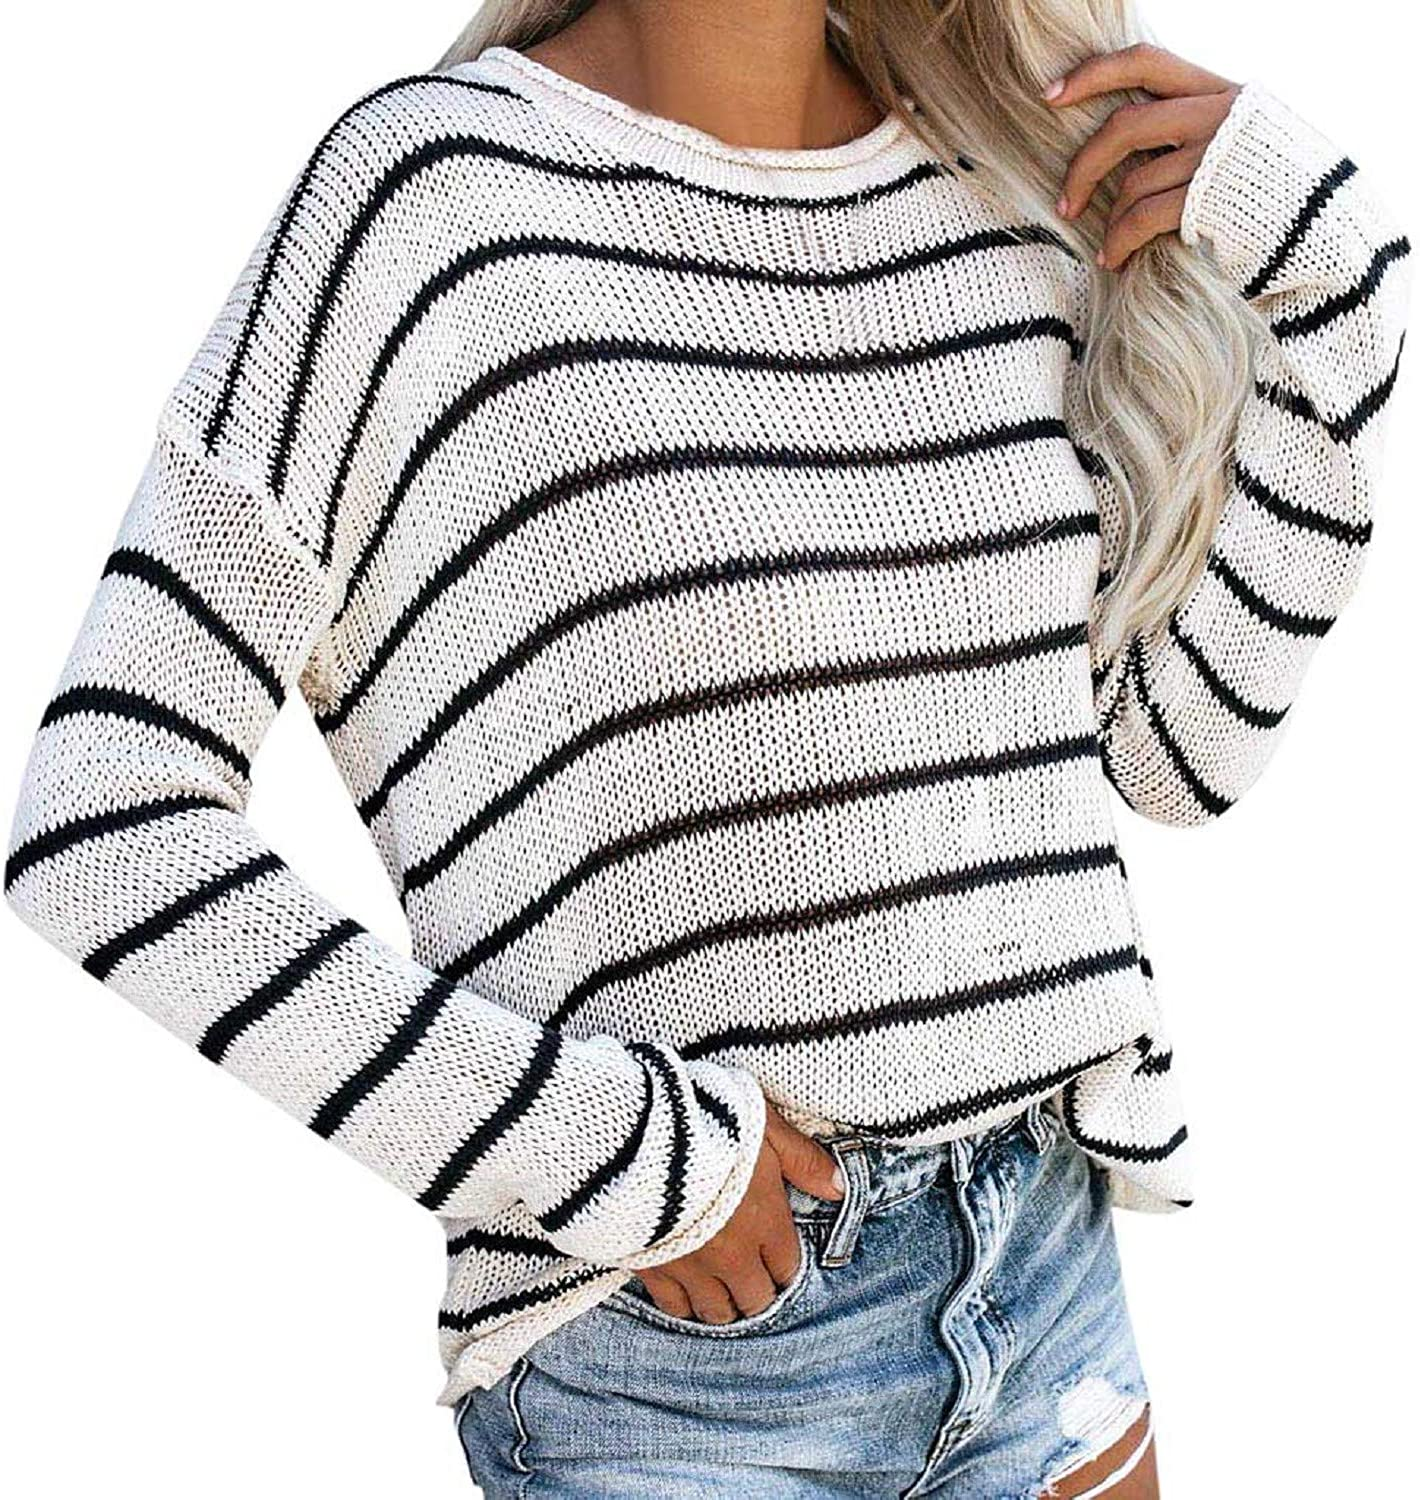 Women Black and White Striped Sweater,Tsmile Knitted Long Sleeve Crew Neck Blouse Autumn Hollow Out Pullover Tops